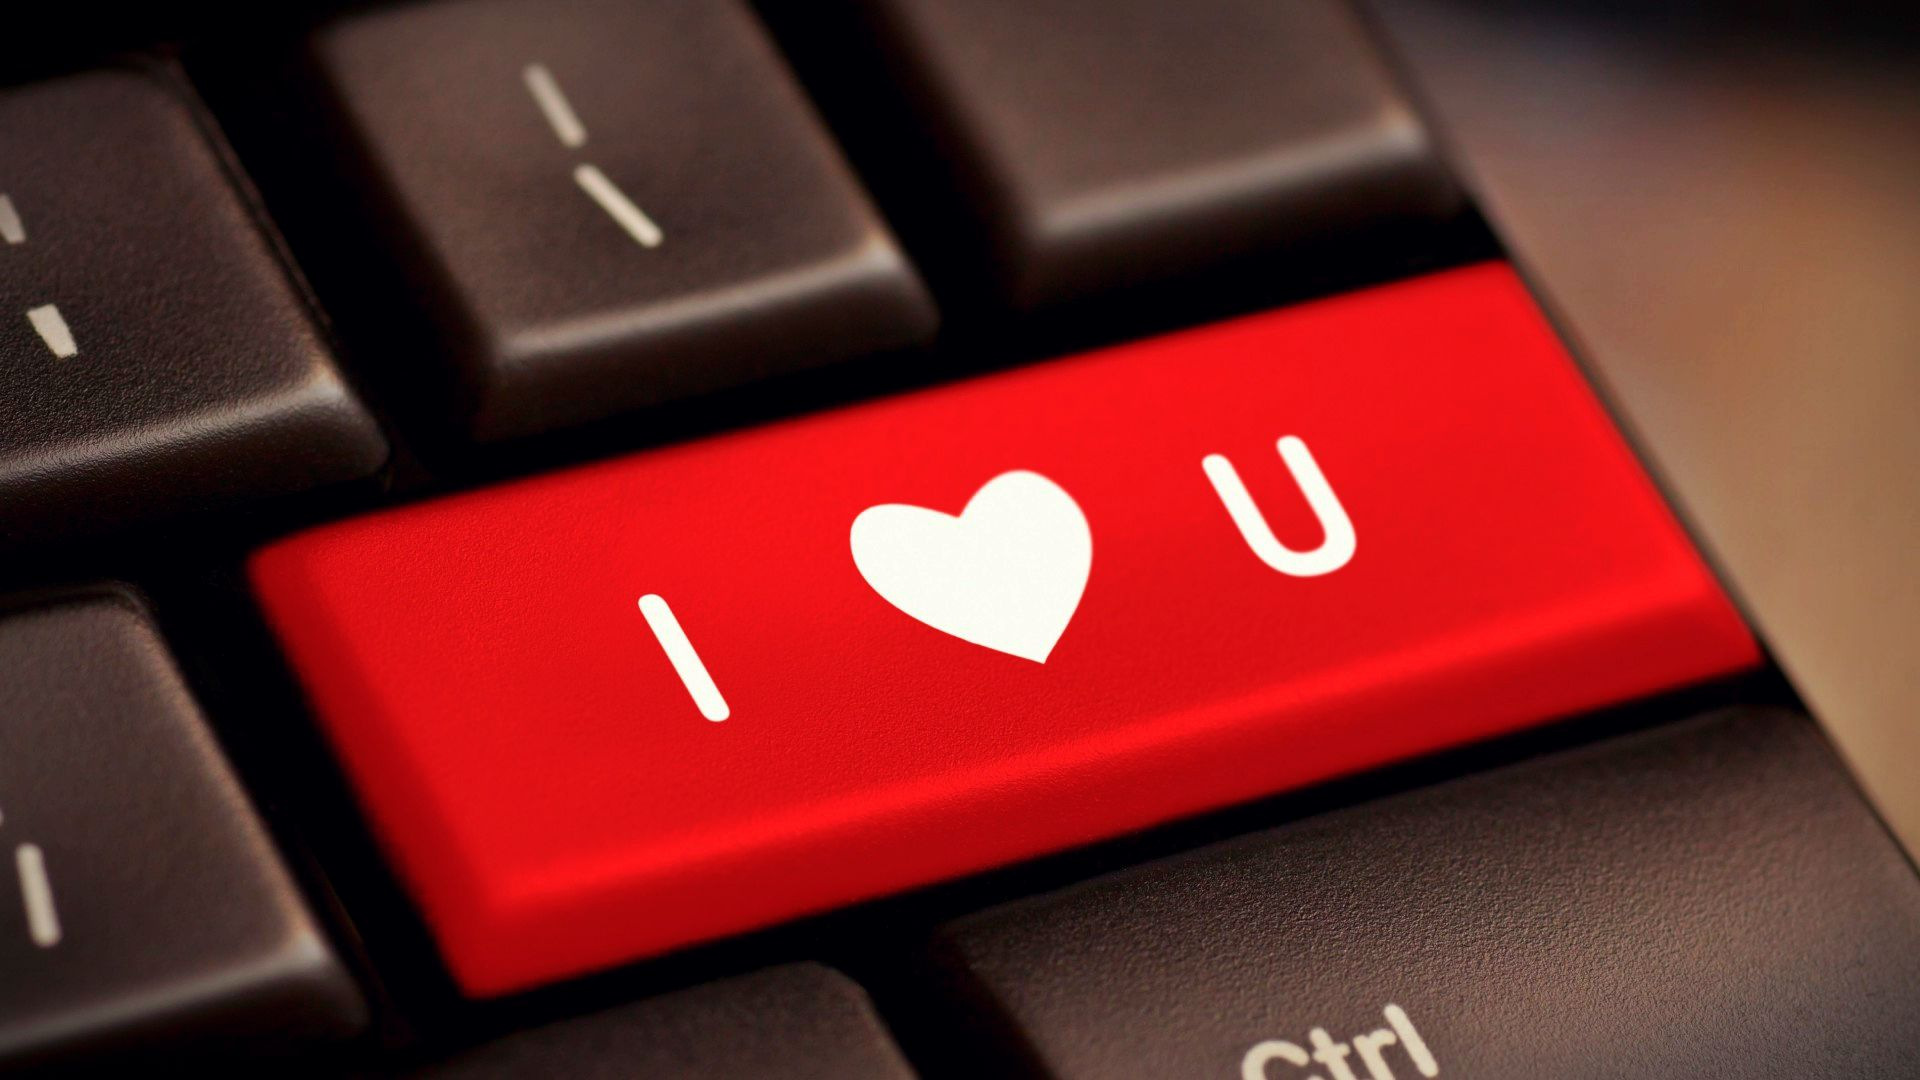 I Love You hd images wallpapers pics photos luv u Love Heart 1920x1080 1920x1080